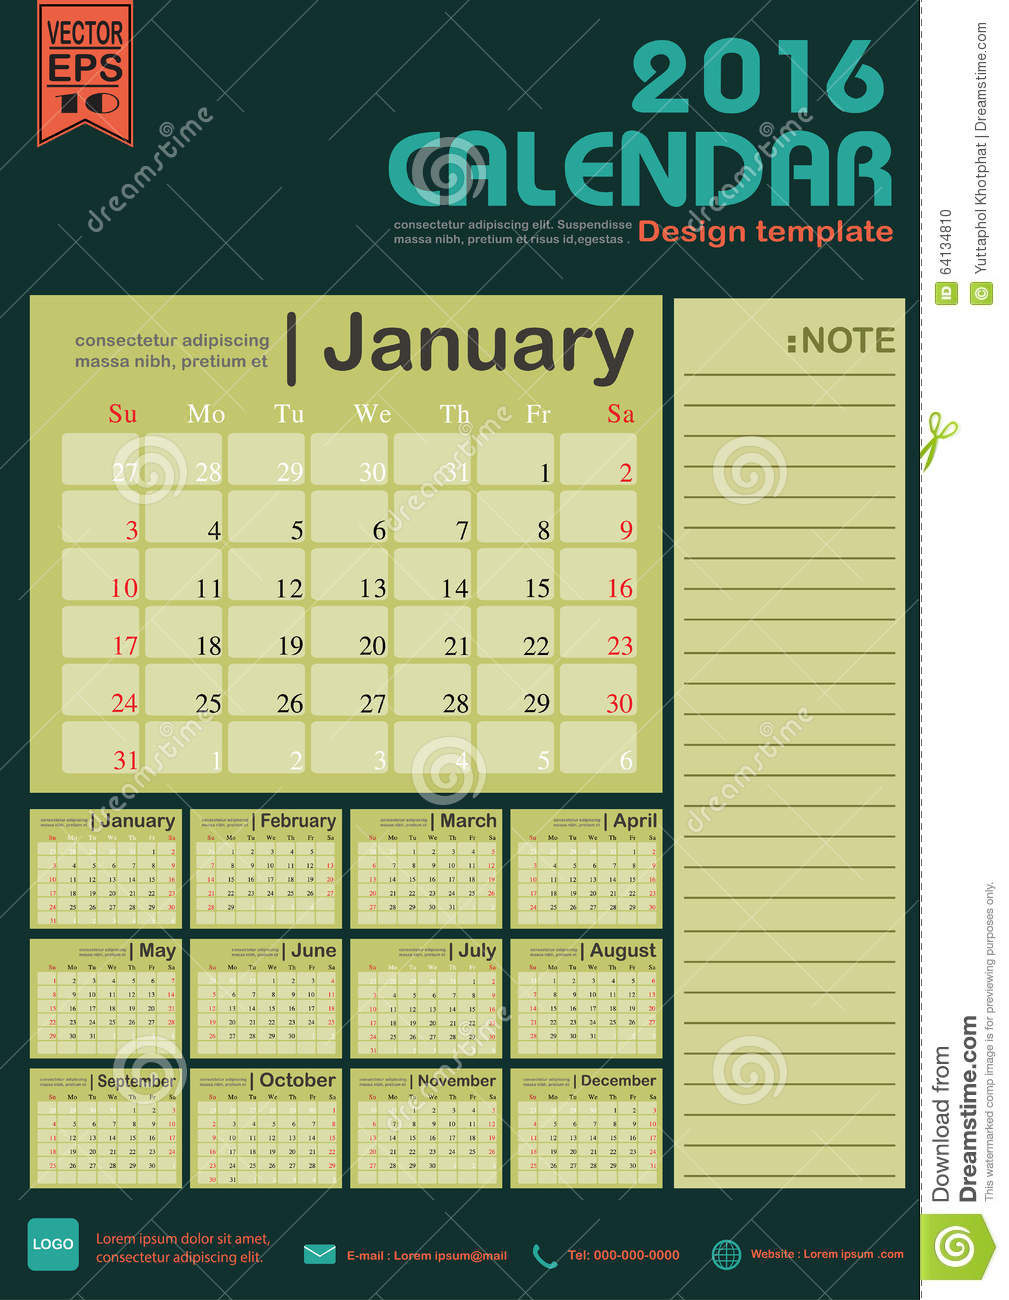 Calendar Background 2016 : Calendar green color tone background design template